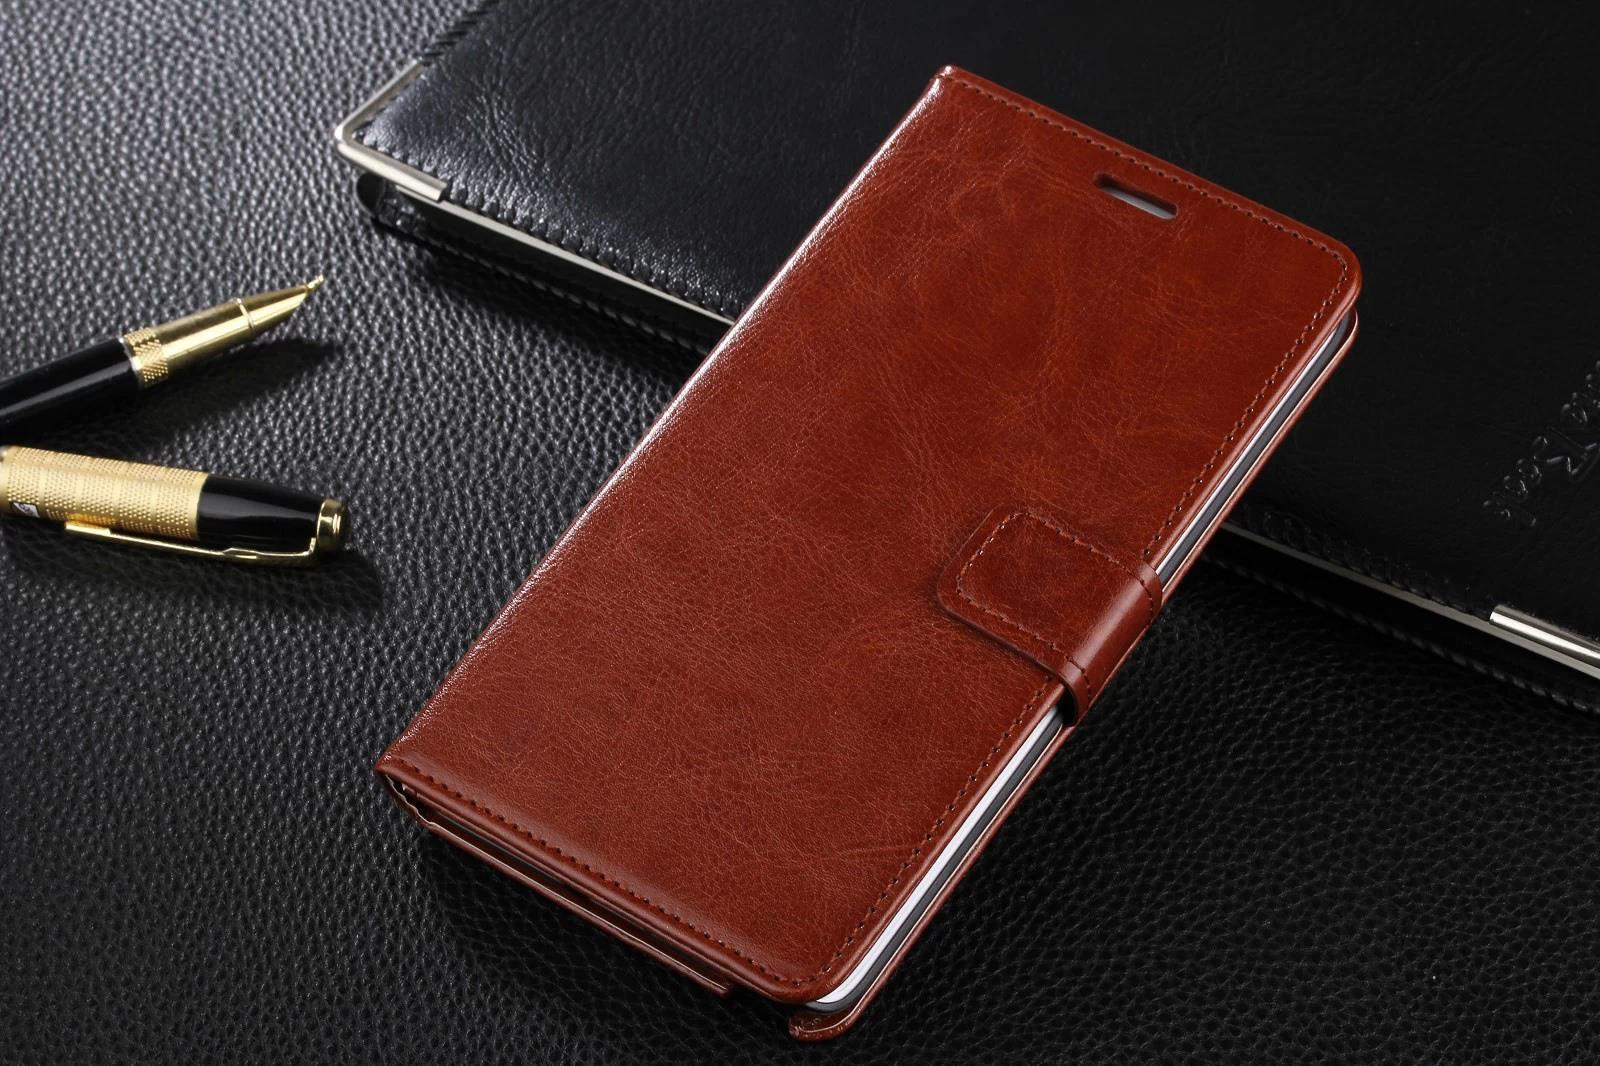 timeless design 43f1e 109c6 US $7.53 |Azns fundas for samsung Note edge Wallet cover Stand Leather Case  for Samsung Galaxy Note 4 edge N9150 Flip cover Card Holders-in Flip Cases  ...